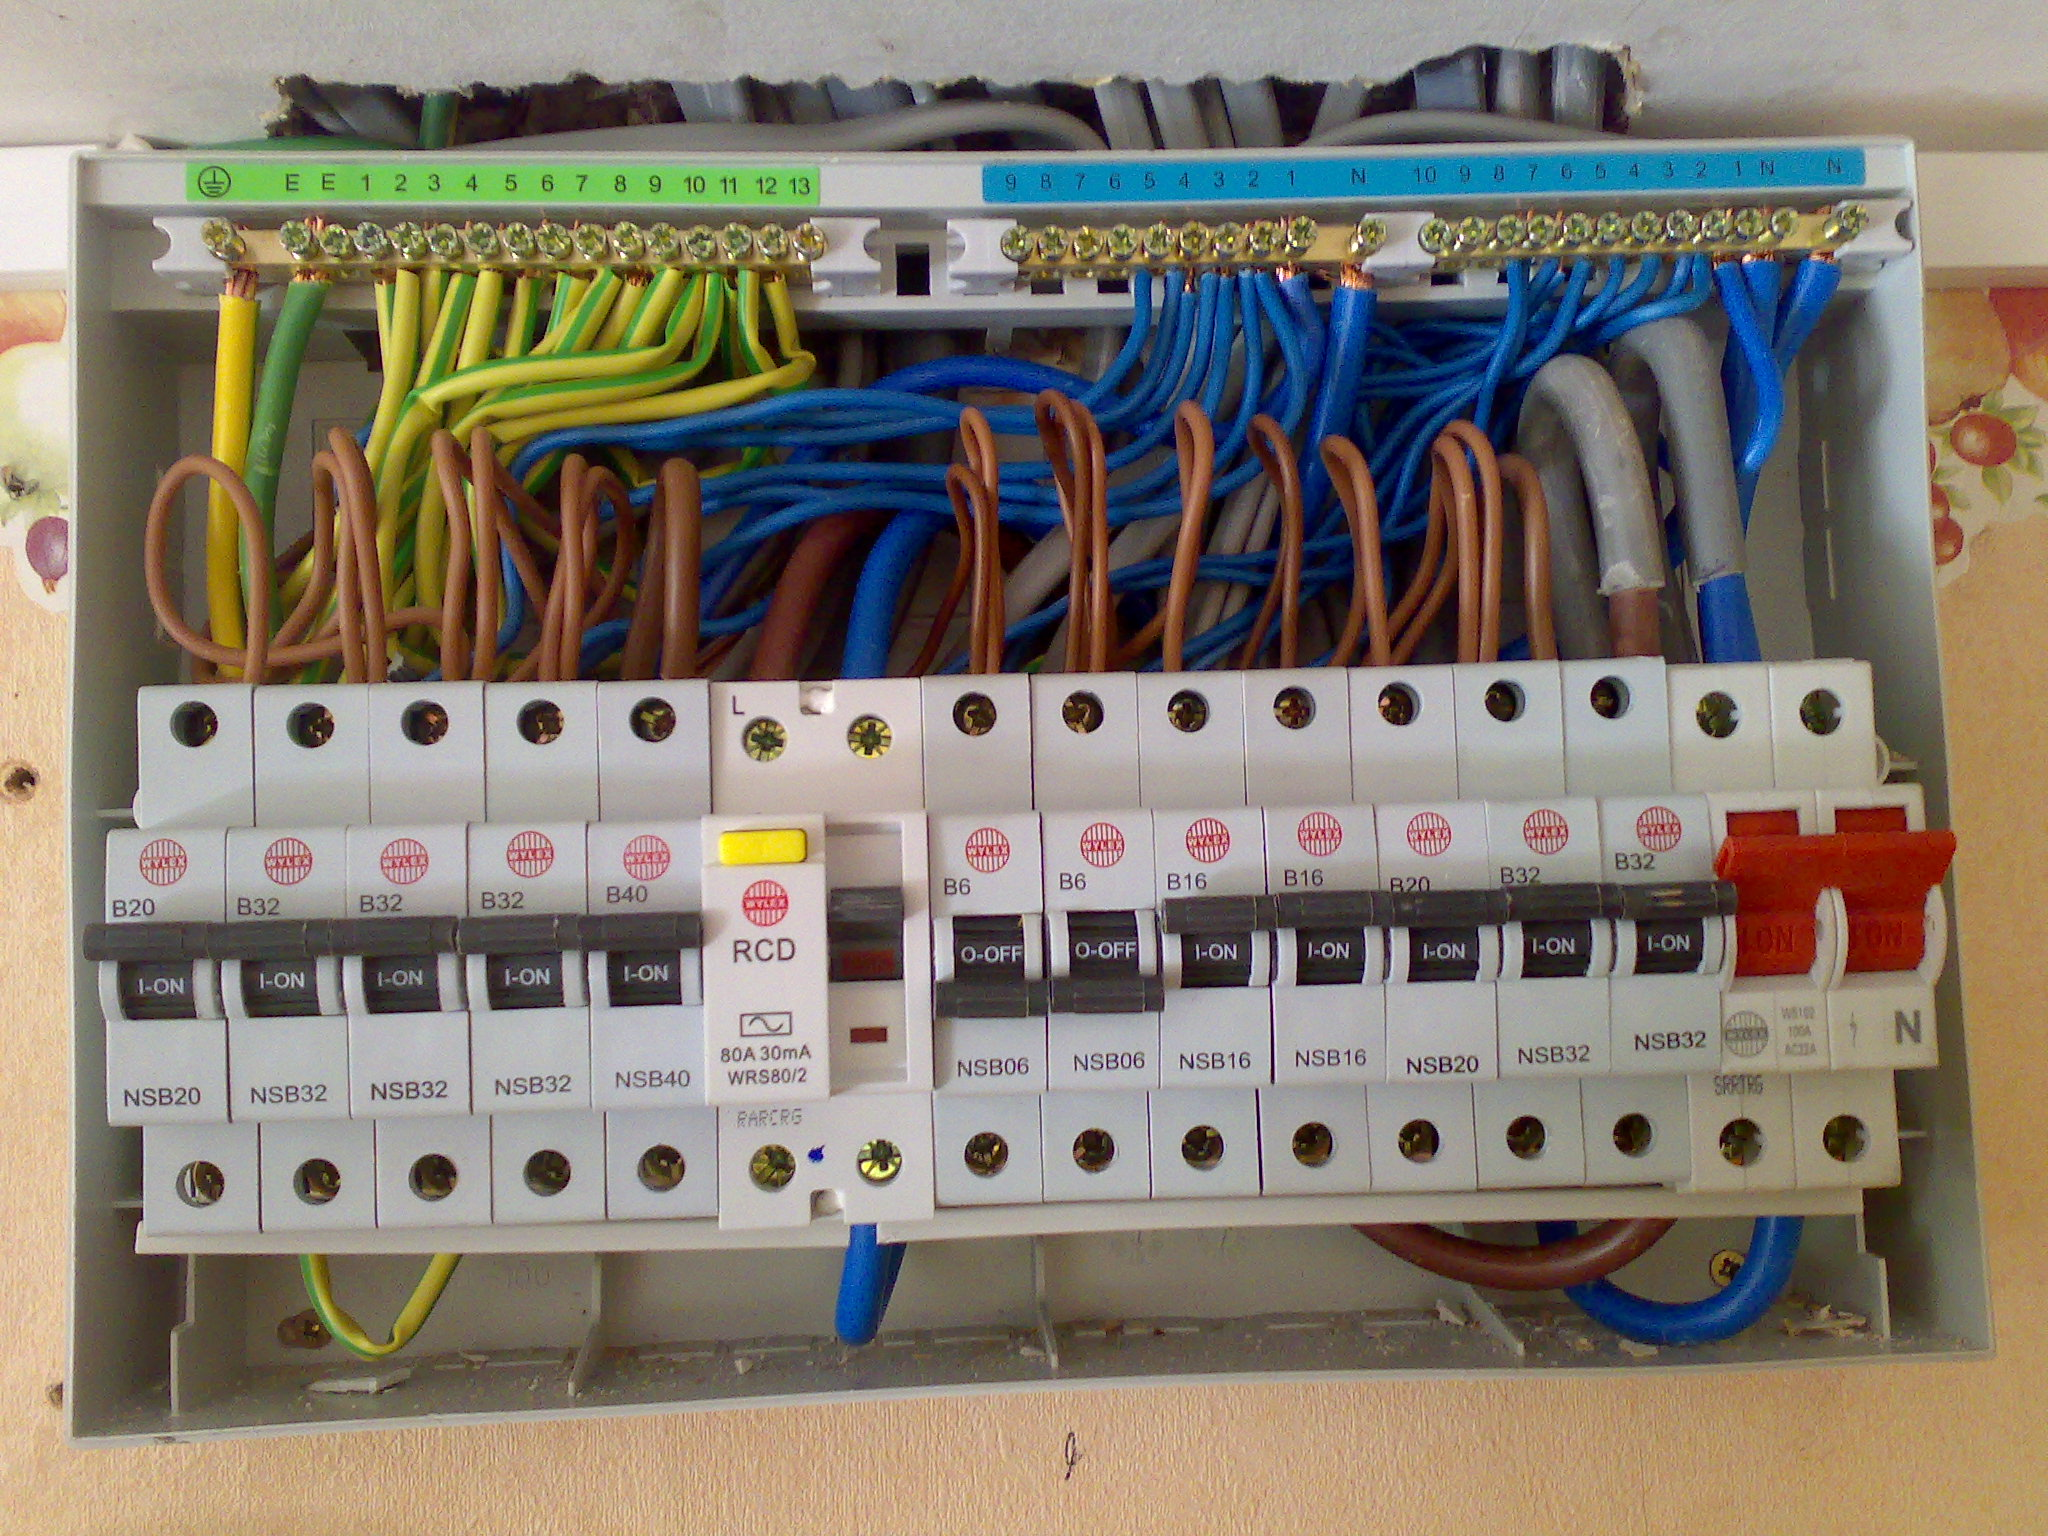 View Pictures And Photos For Anelectrical Services Ltlt Watch The Change Fuse In Breaker Box Board Upgrades